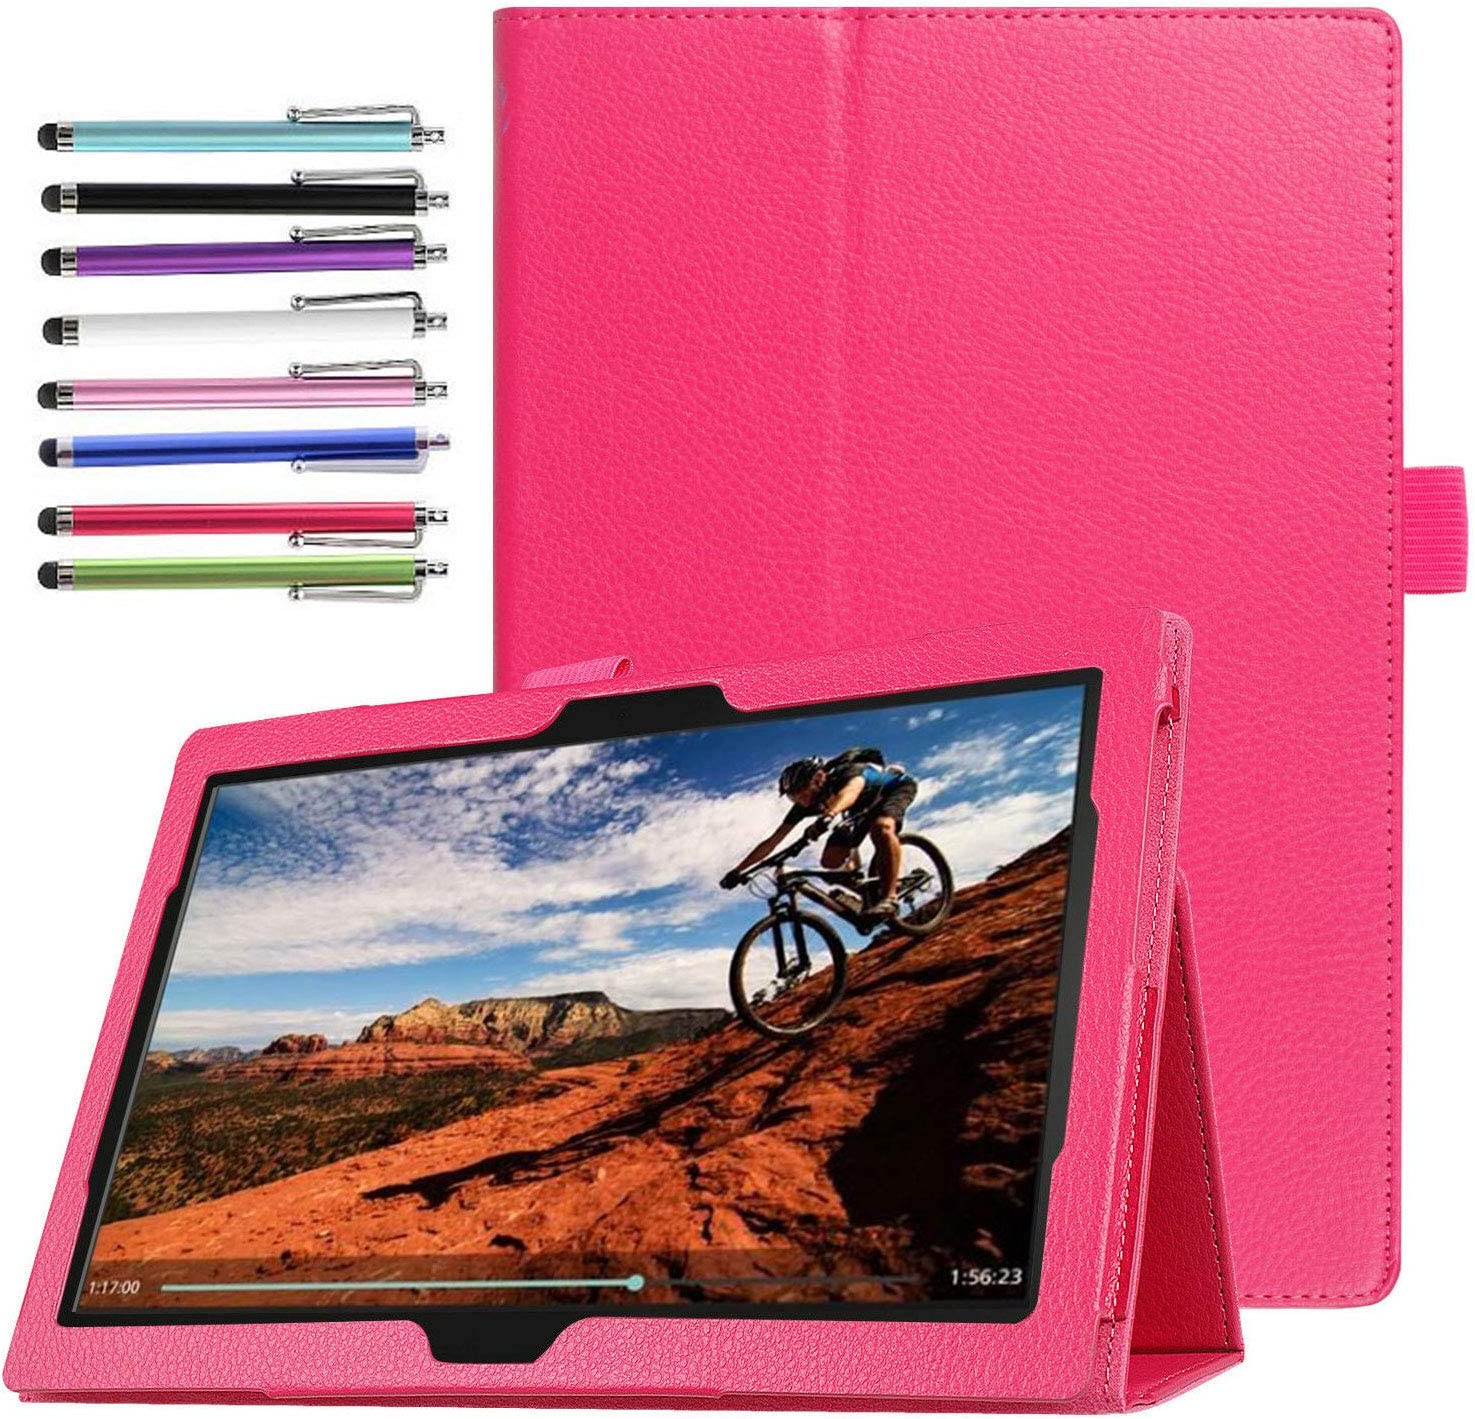 Epicgadget Case for Lenovo Tab E10 (TB-X104F), Slim Lightweight Folio PU Leather Folding Stand Cover Case for Lenovo Tablet 2018 Tab E 10 10.1 Inch Display (Pink)